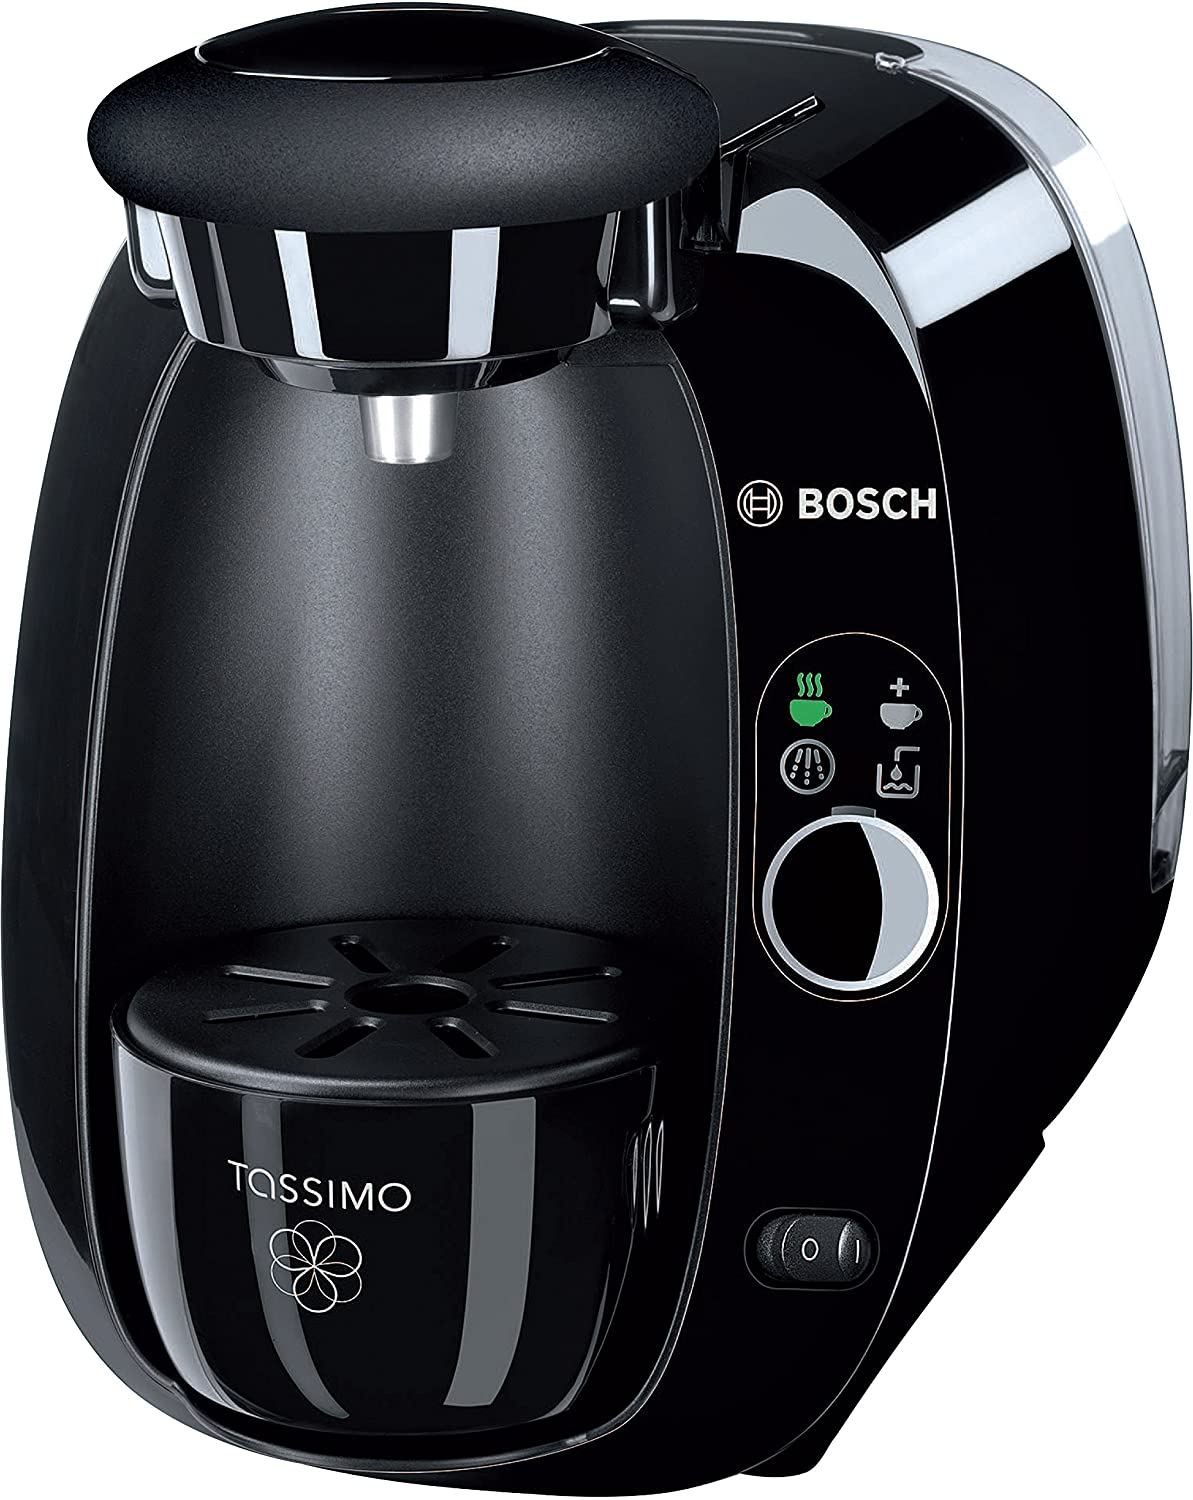 Asda Coffee Maker Instructions : Bosch Tassimo T20 Amia Hot Beverage Coffee Espresso Maker Machine TAS2002GB NEW 4242002644998 eBay